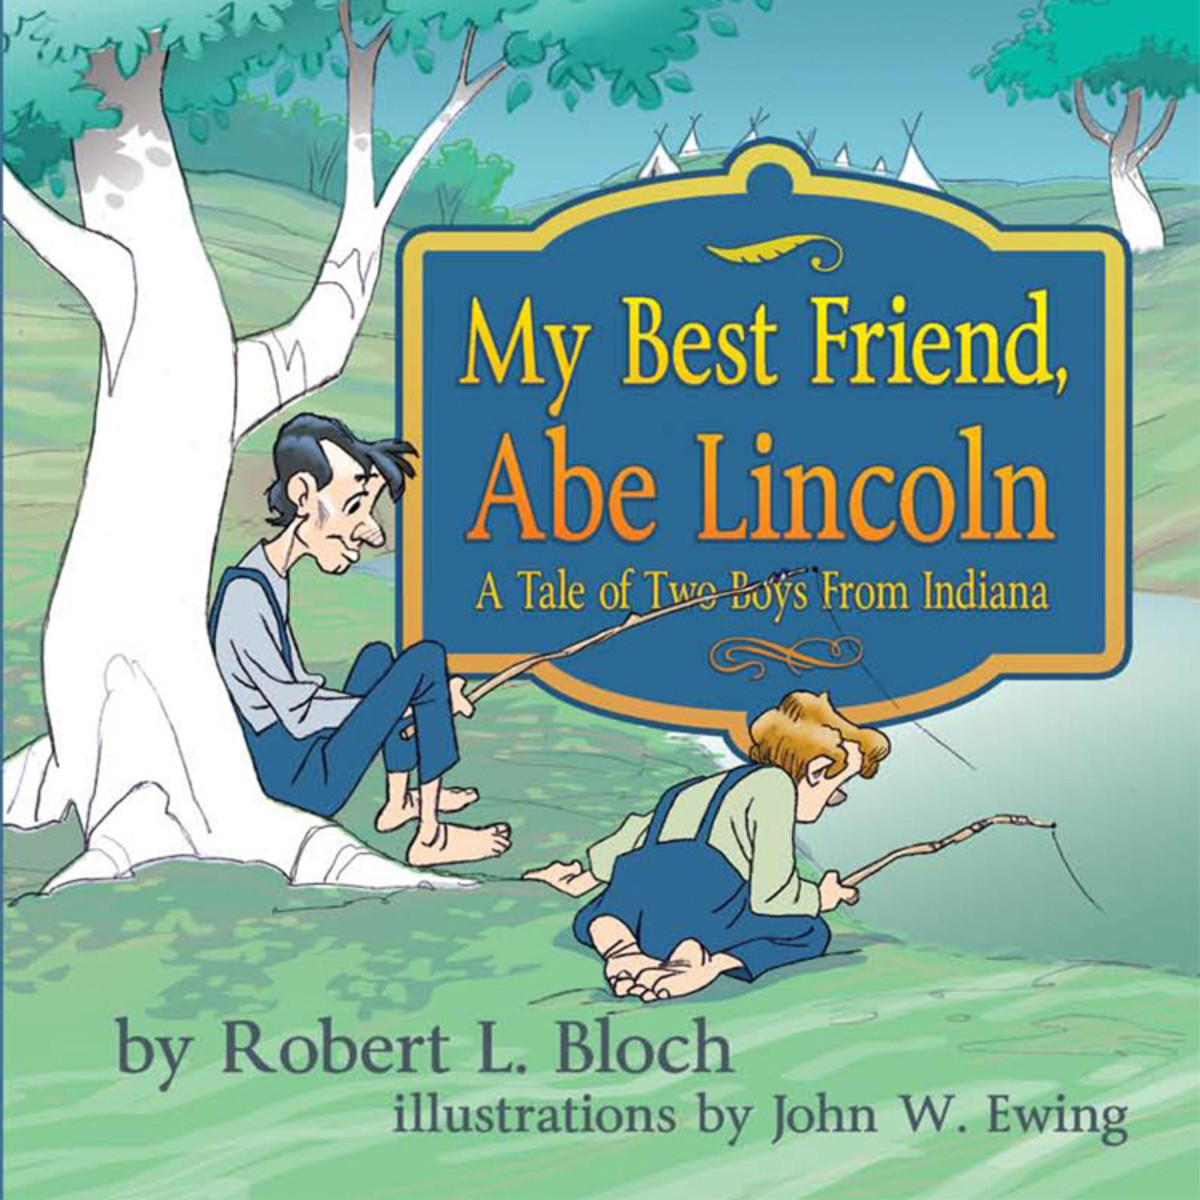 My Best Friend Abe Lincoln: A Tale of Two Boys From Indiana by Robert L. Bloch - Image is from http://www.3garnets2sapphires.com/